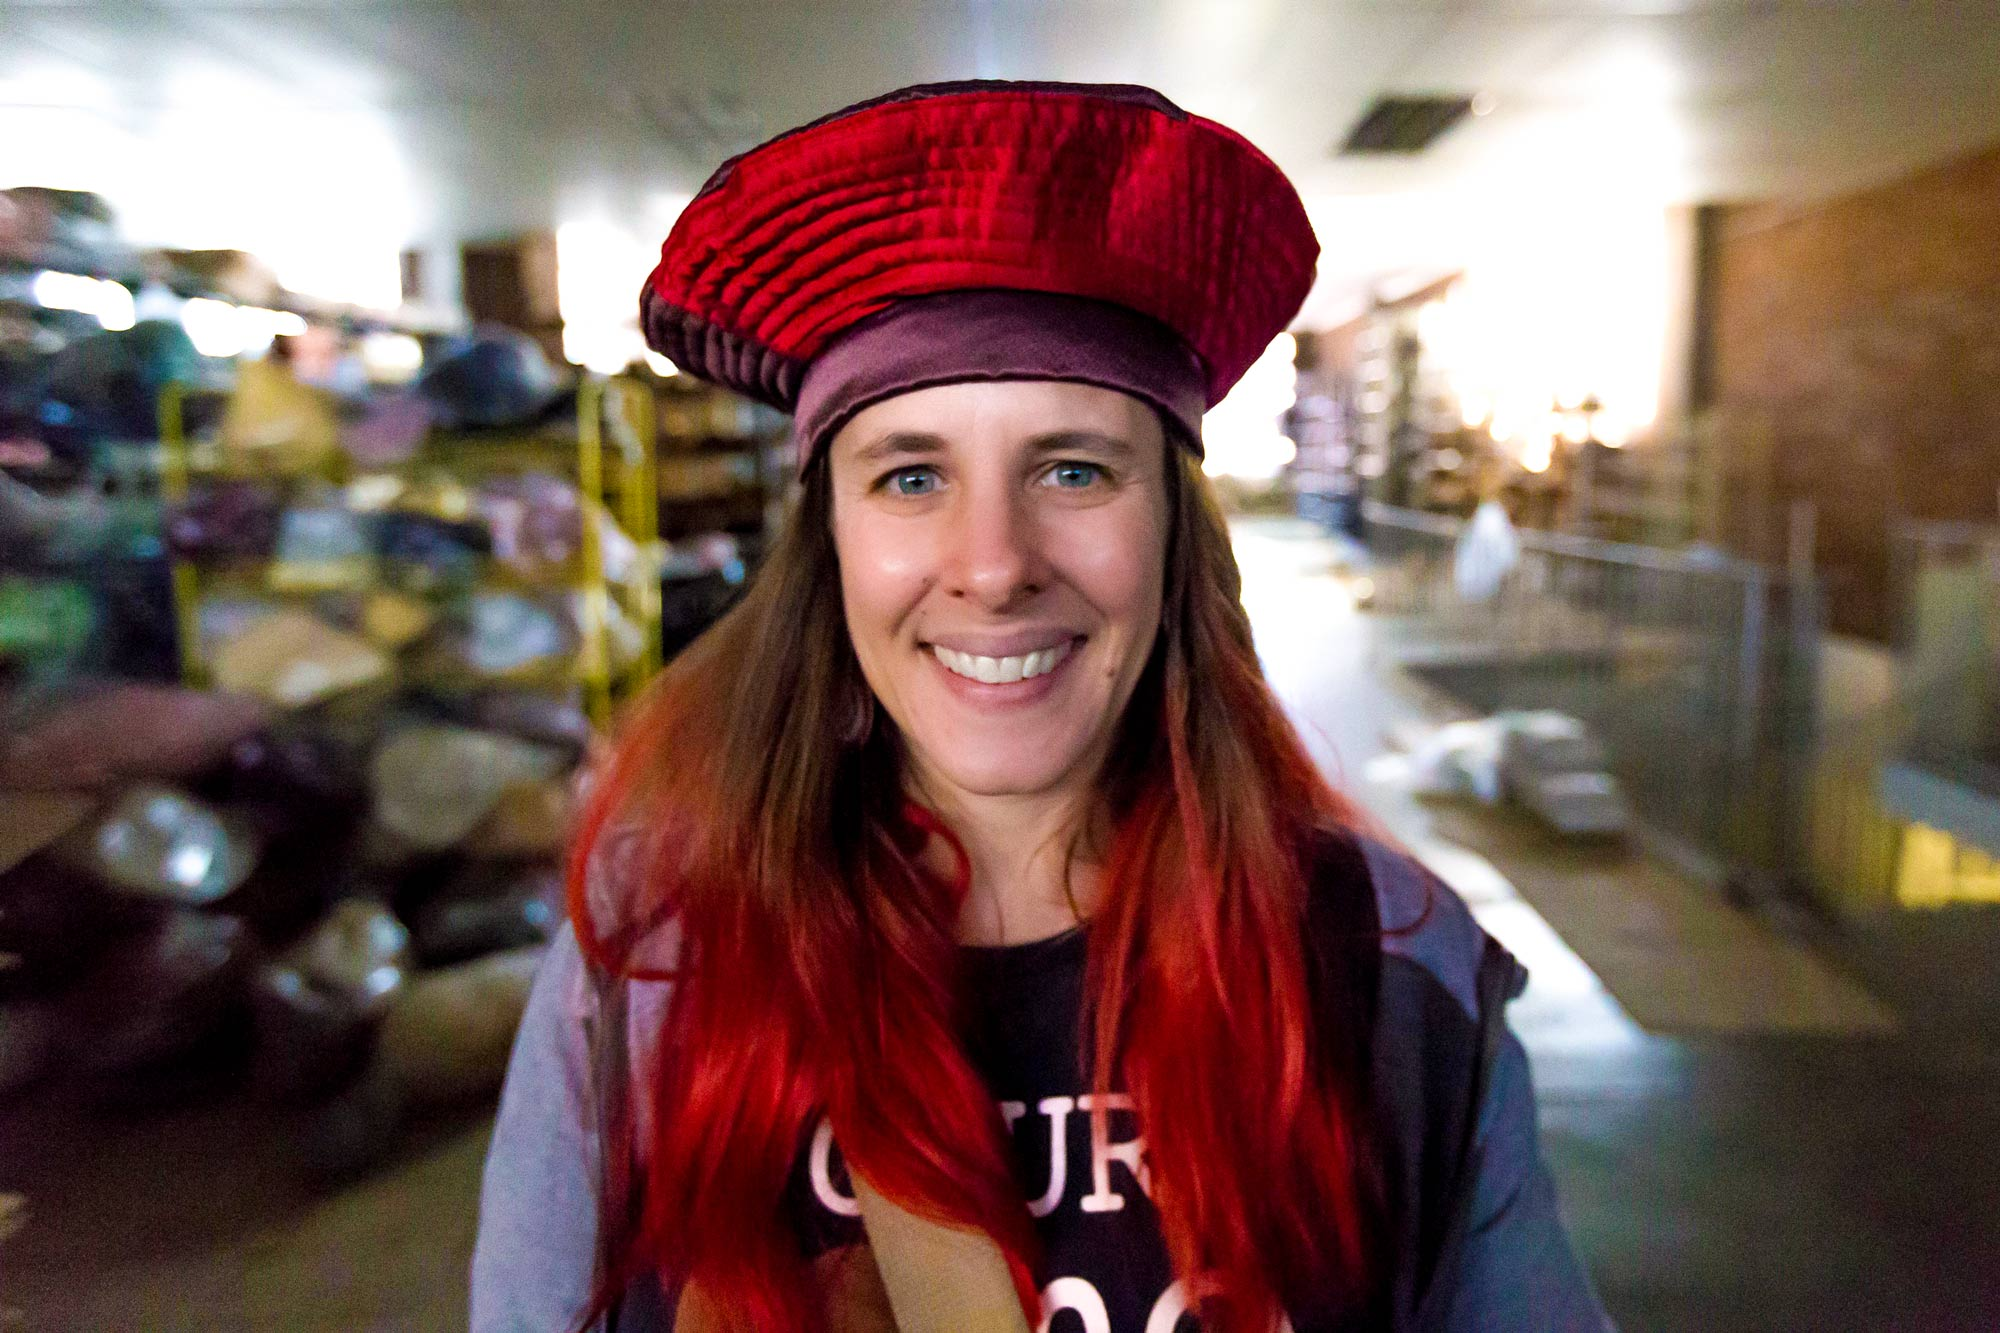 Mason explores a hat factory in downtown Johannesburg. (Photo by Gail Wilson, courtesy Heather Mason)